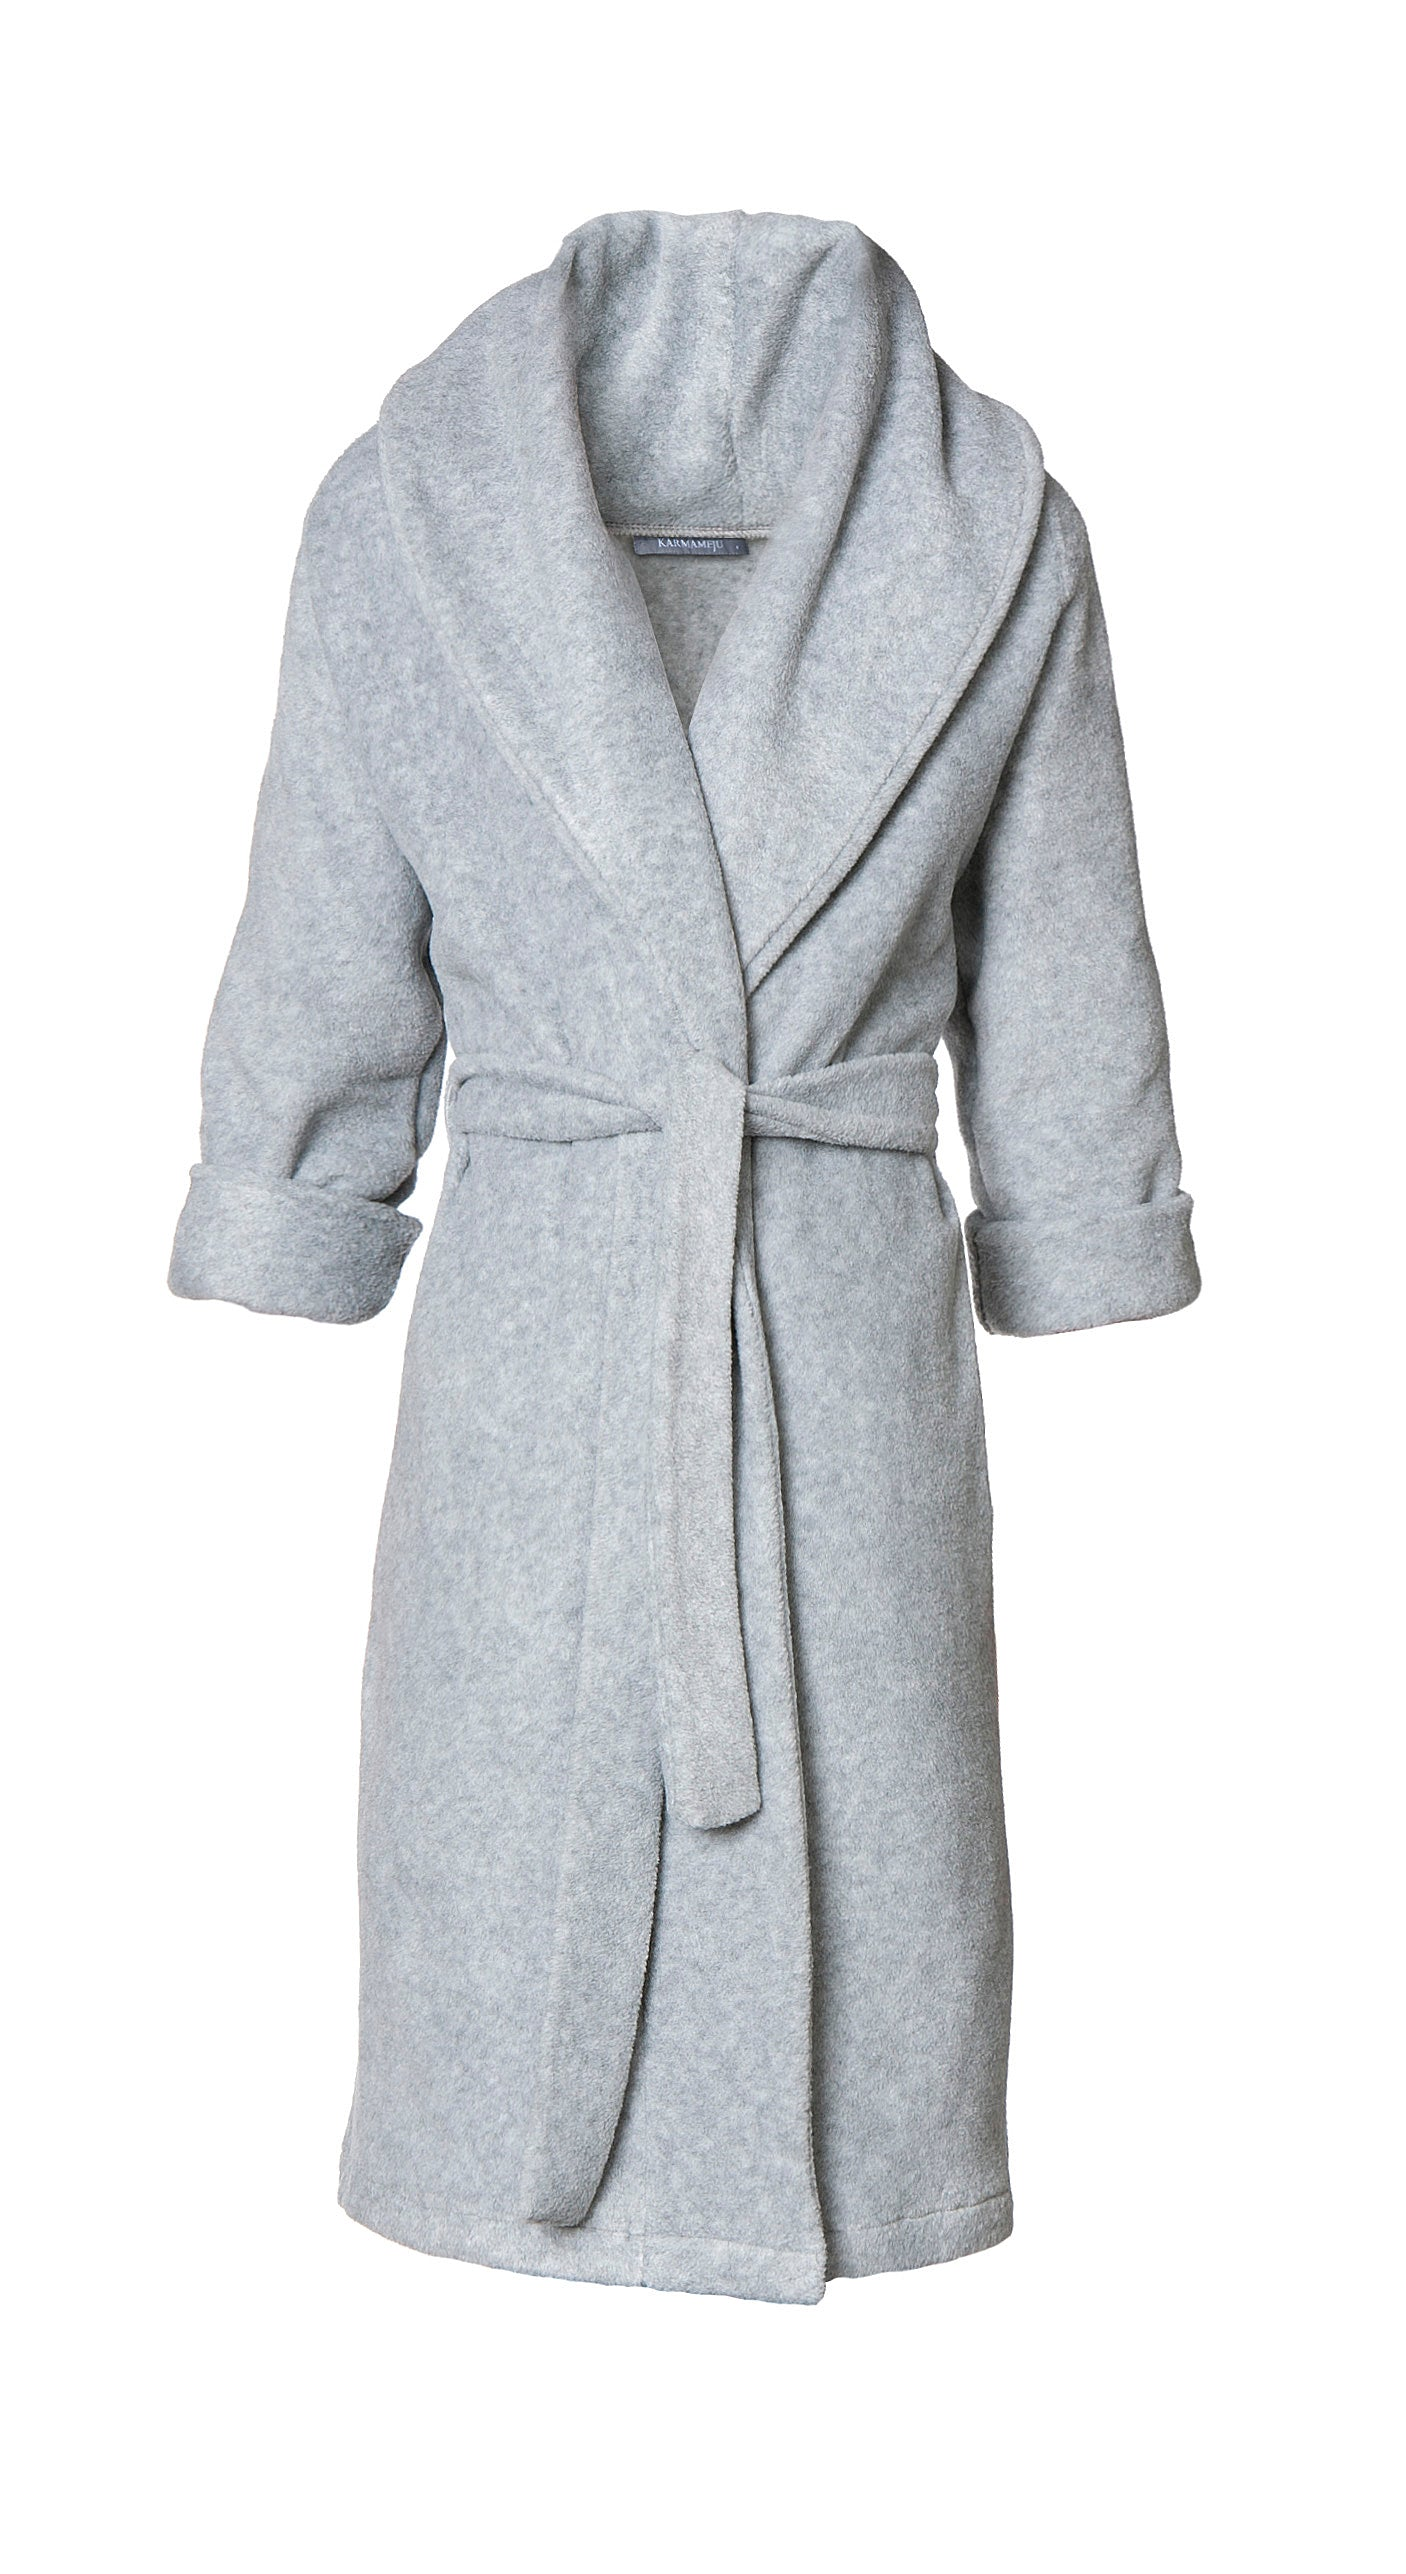 MOUNT FUJI / FLEECE BATHROBE